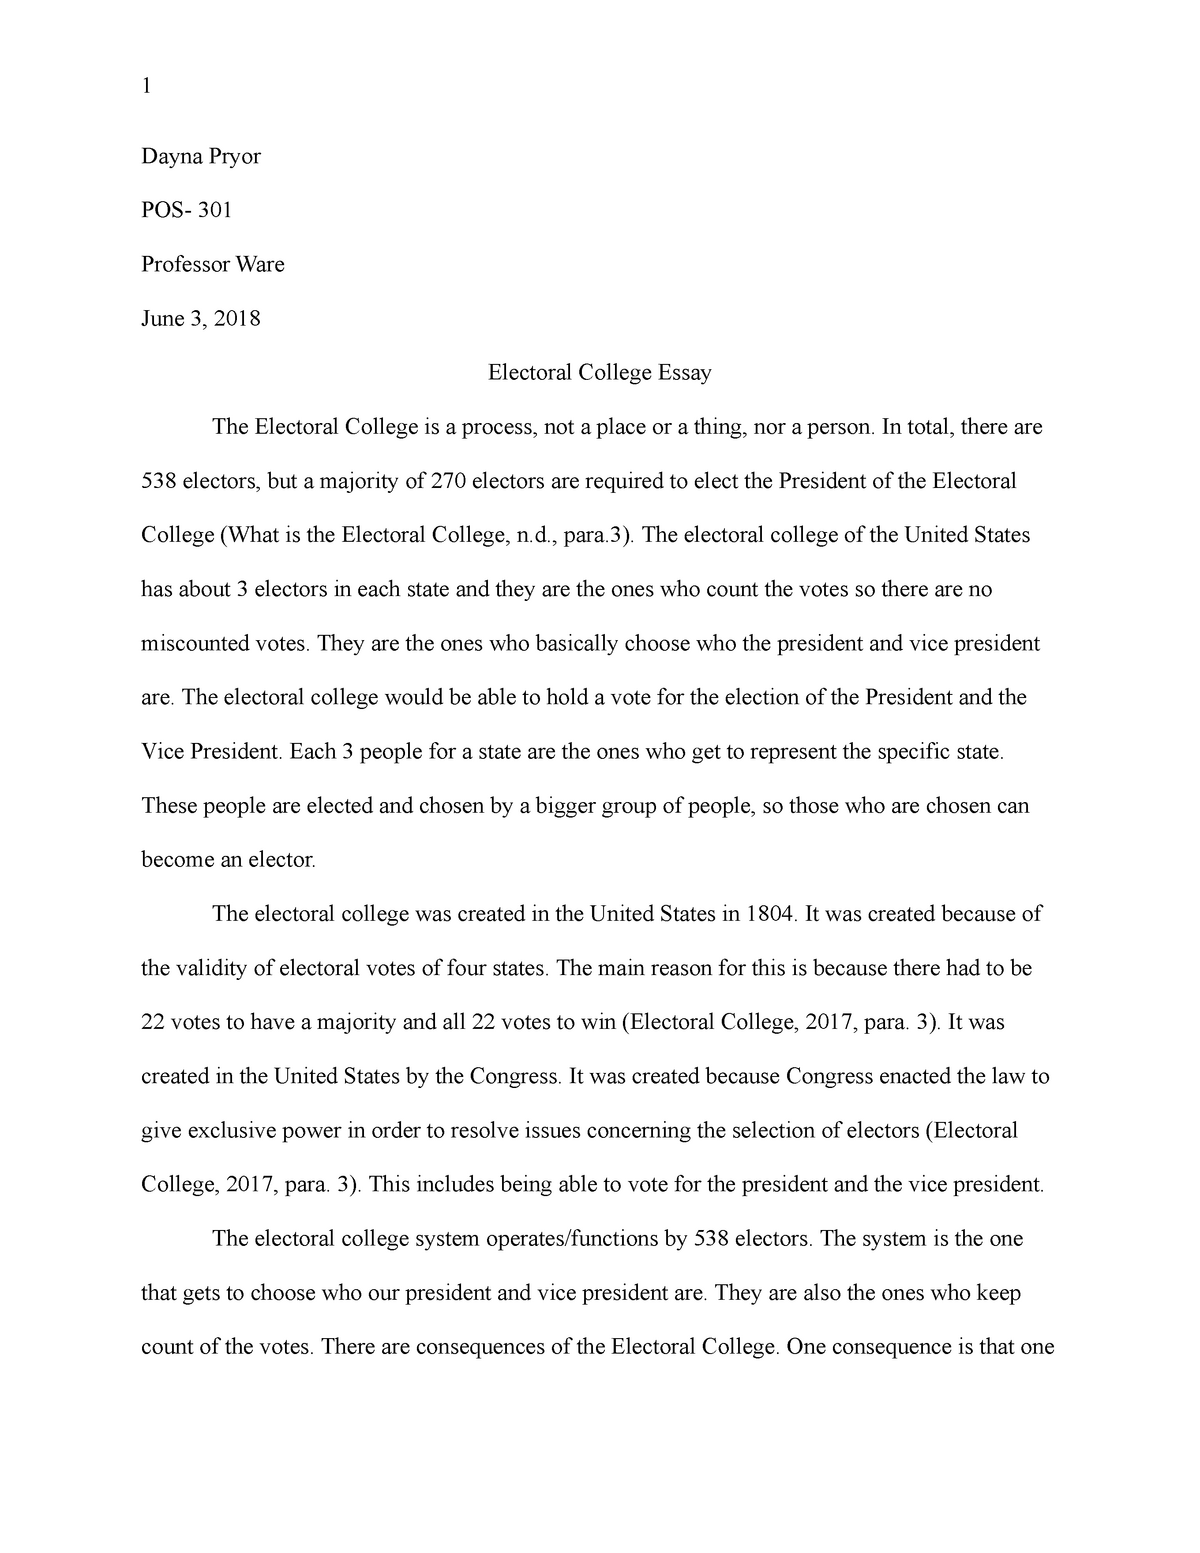 Electoral college essay pos 301 arizona and federal government